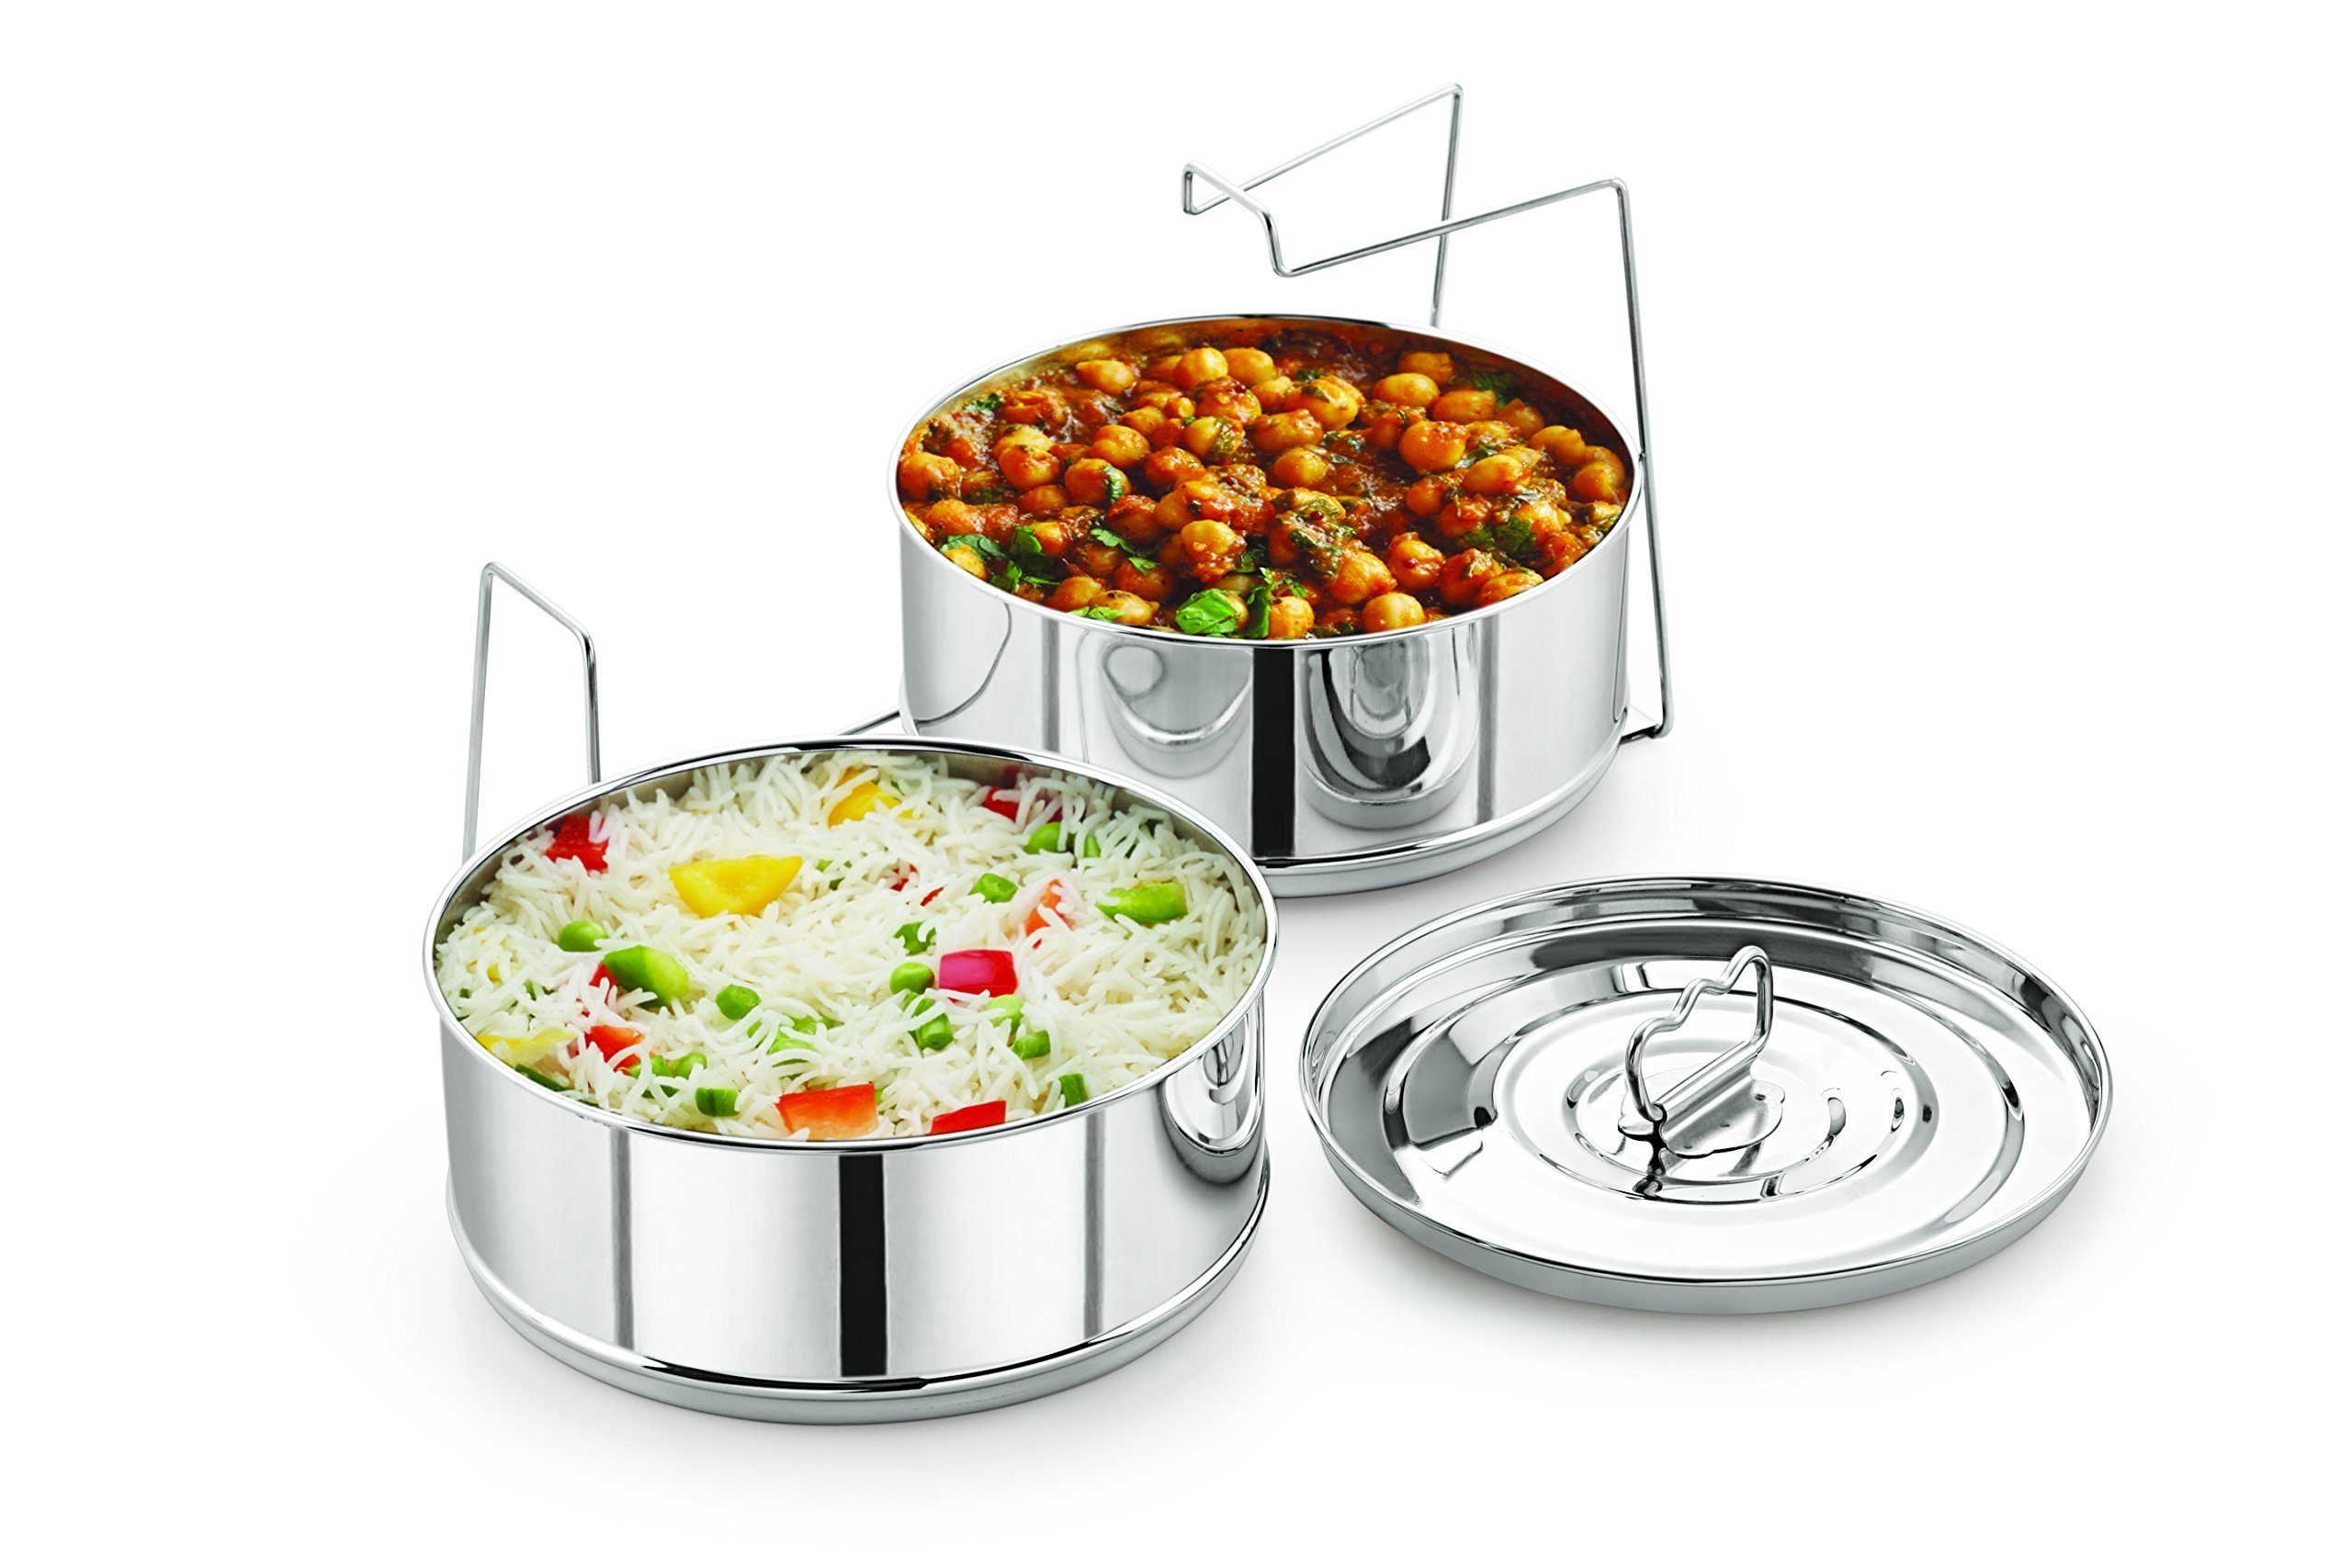 Stackable Stainless Steel Insert Pans - Inserts for Instant Pot - Pan for Instapot - FITS 6 Quarts and Above size - Pressure Cooker Steamer Pan - Single Size Stackable Insert Pans by LNM Steamer Cooker Pans